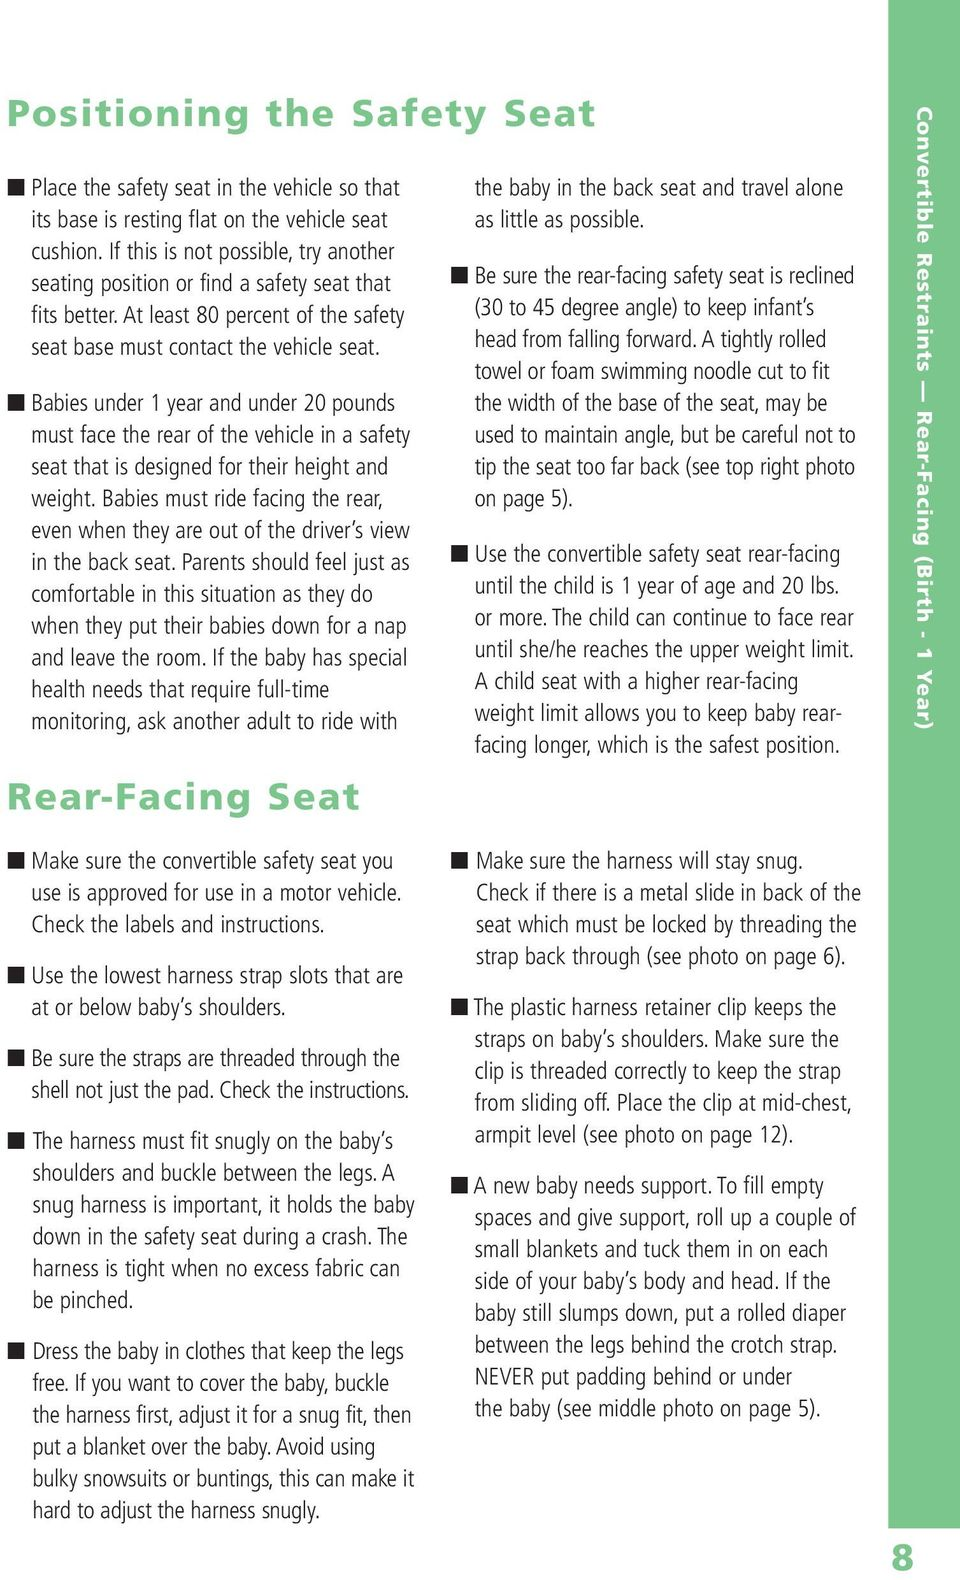 Babies under 1 year and under 20 pounds must face the rear of the vehicle in a safety seat that is designed for their height and weight.